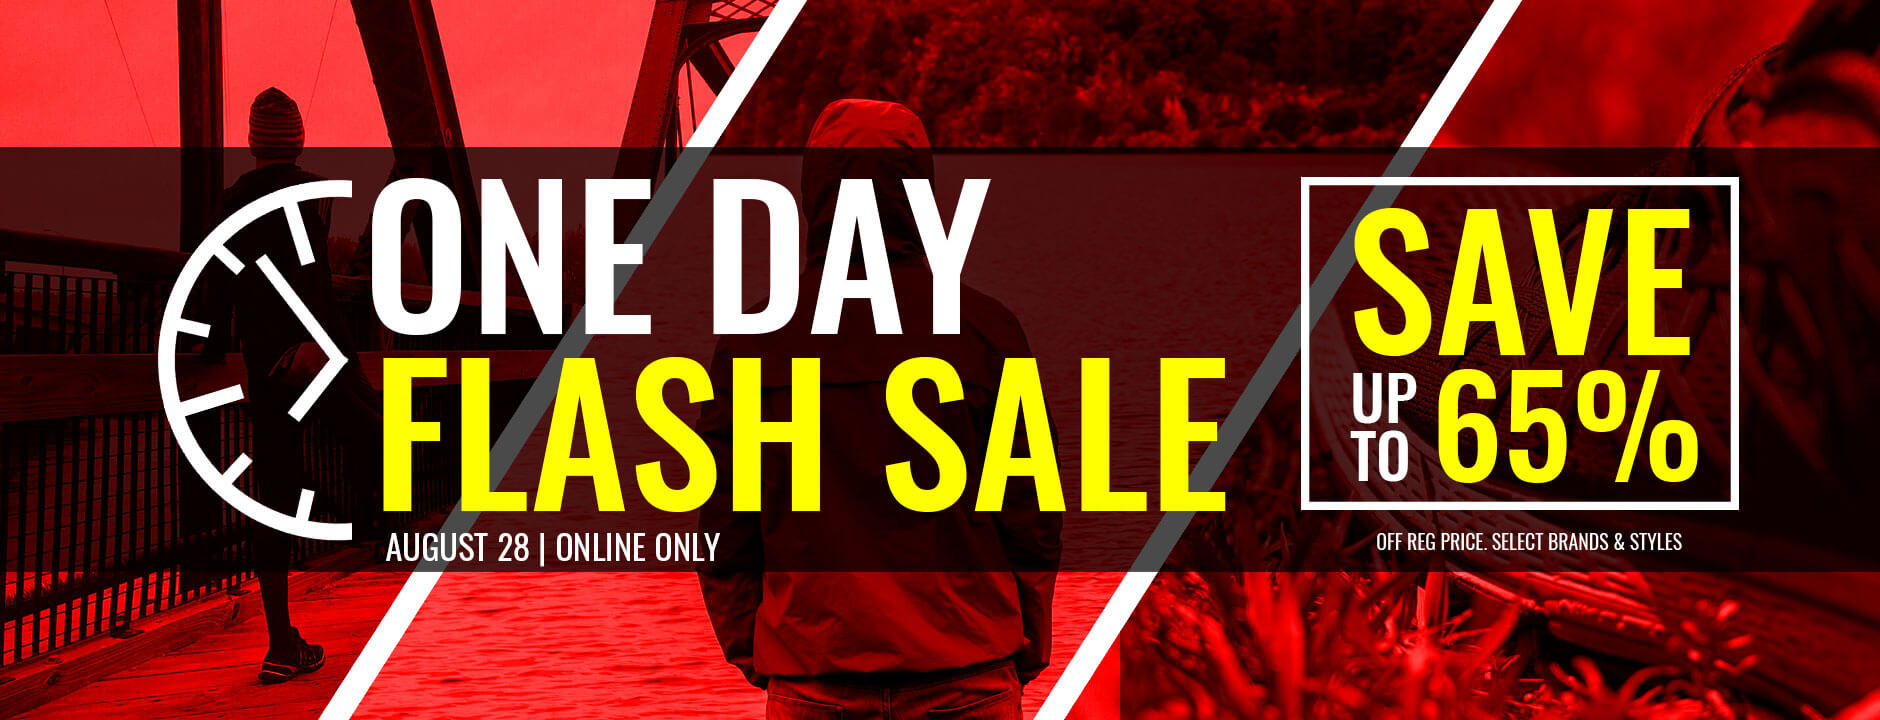 August 28 Flash Sale